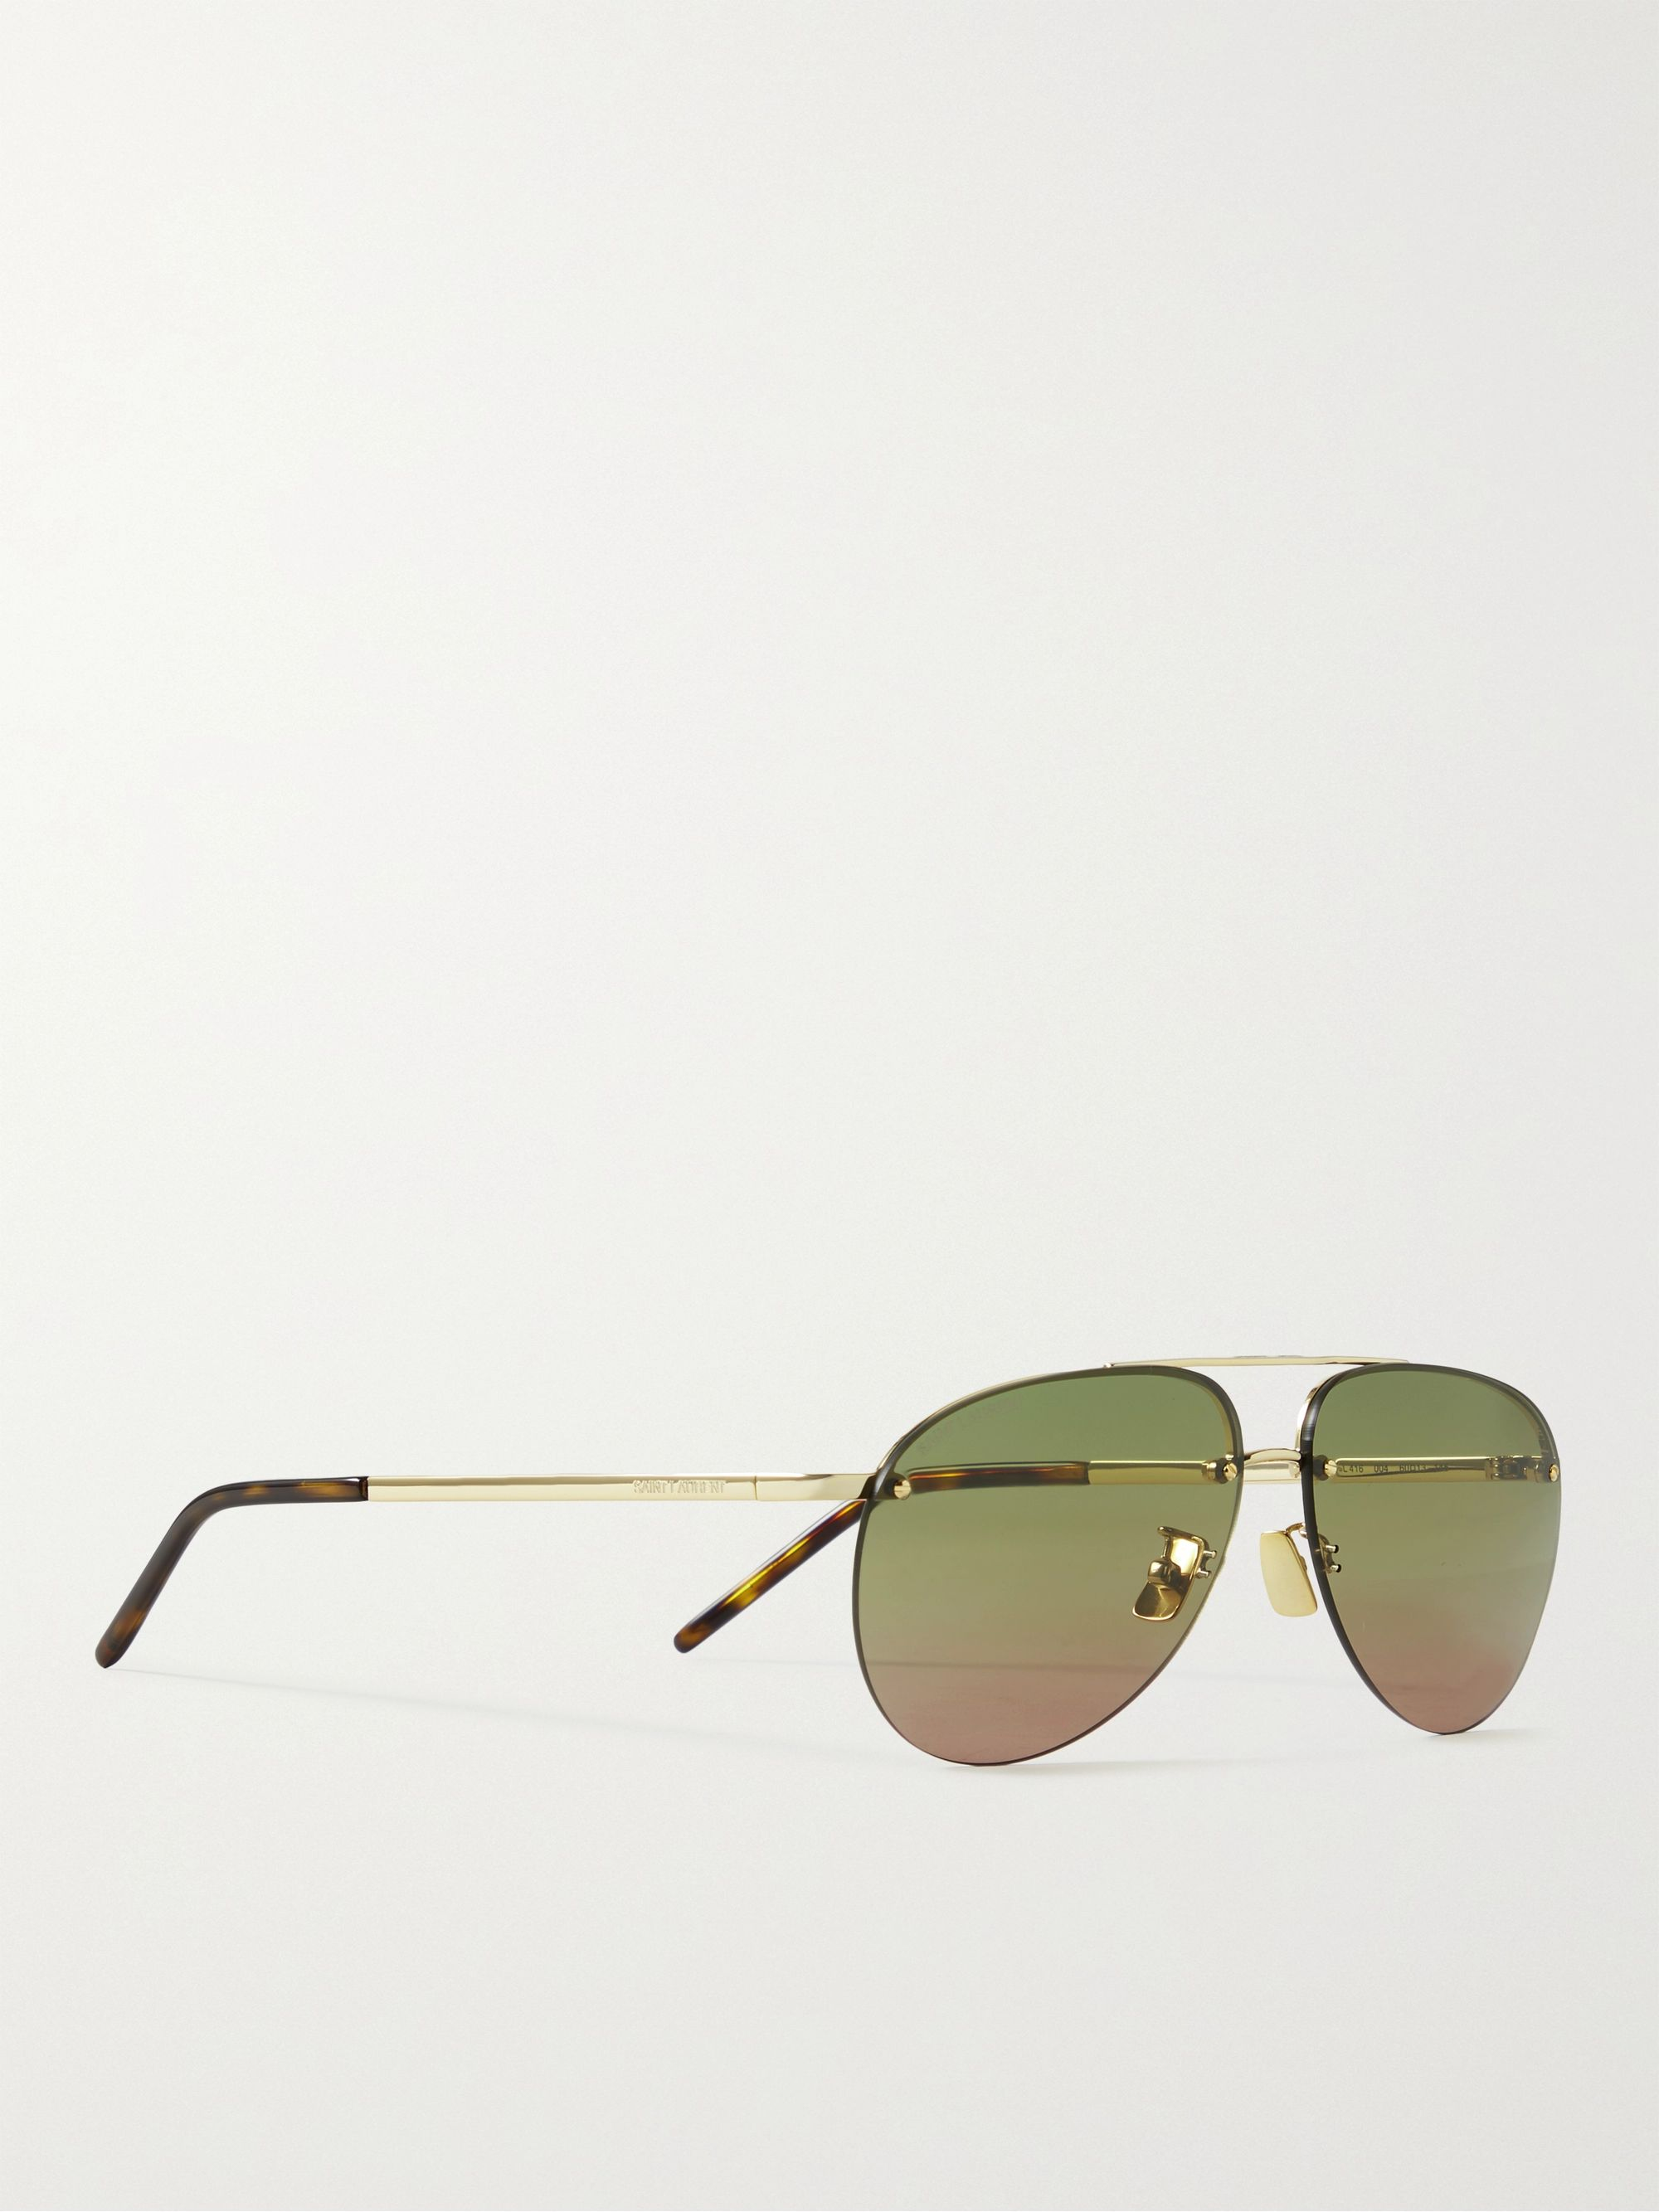 SAINT LAURENT Rimless Aviator-Style Gold-Tone Sunglasses